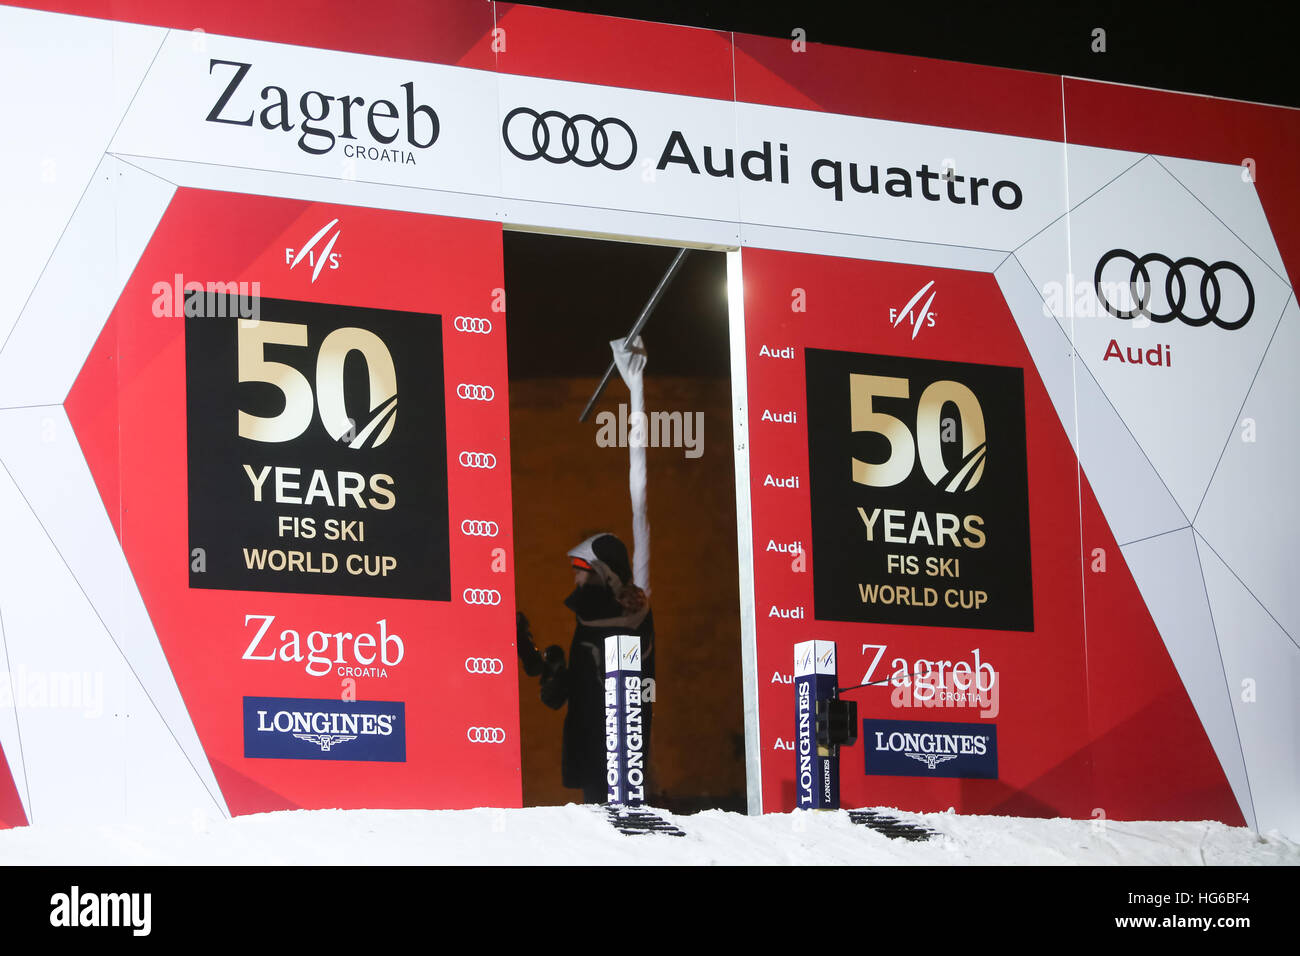 Zagreb, Croatia. 4th January, 2017. A celebration marking the 50th anniversary of the FIS World Cup in alpine skiing. Stock Photo